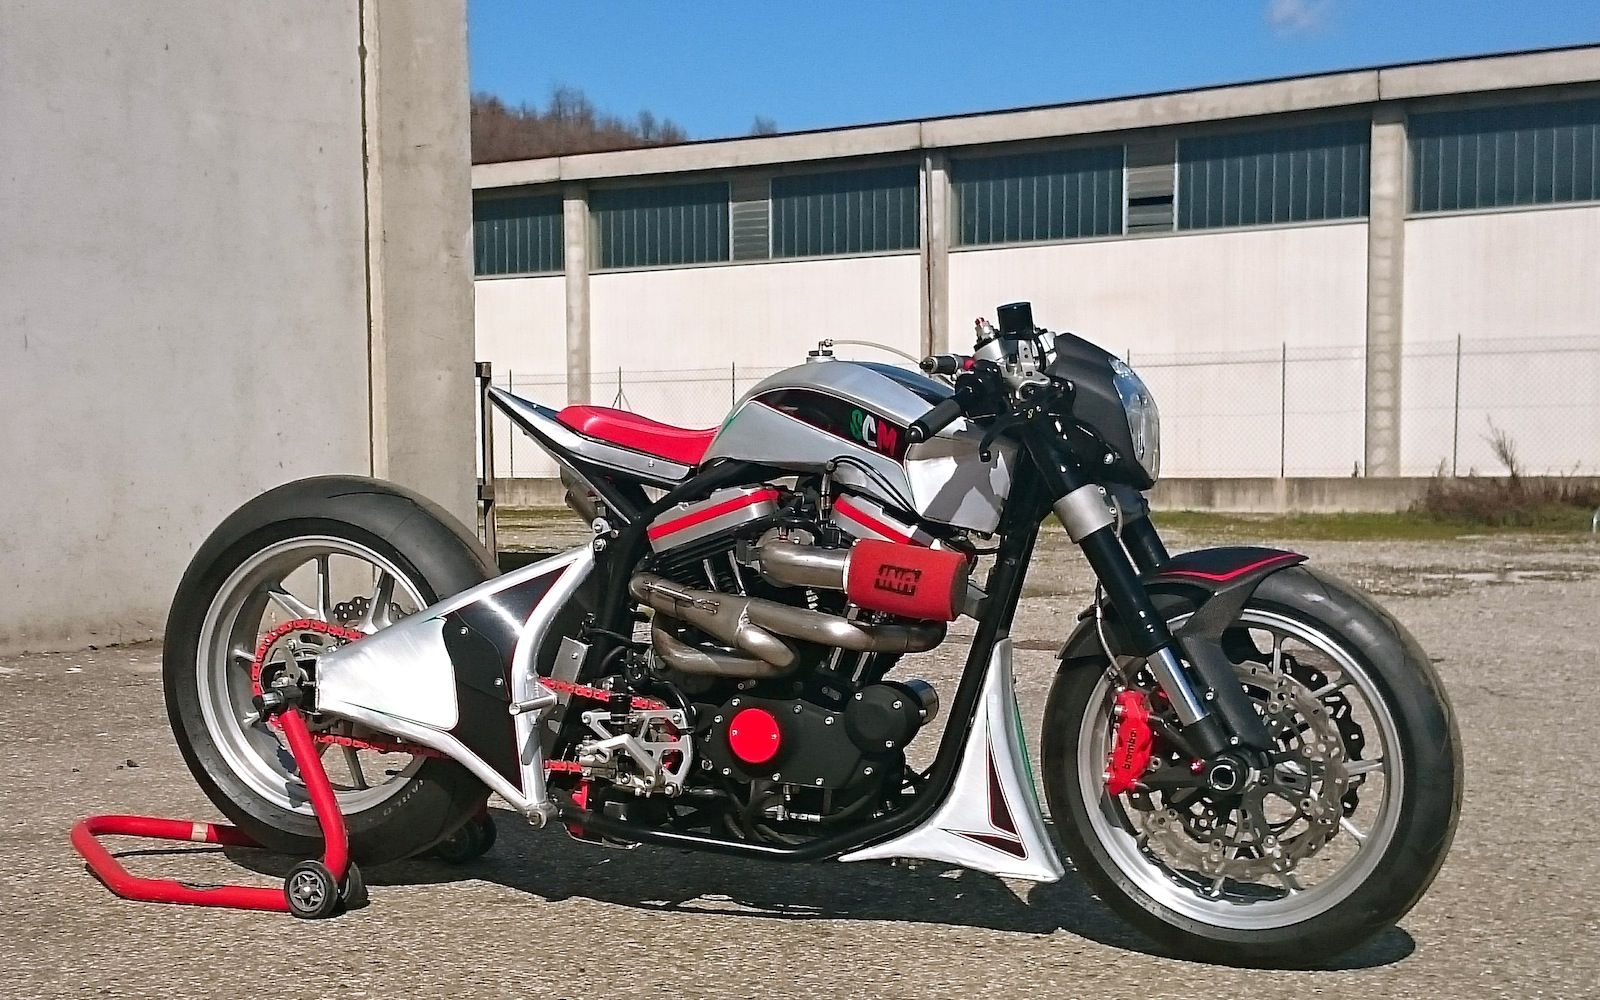 Buell X1 By Simone Conti Motorcycles | Ducati 1098 Front End | Ducati 999  Rims |